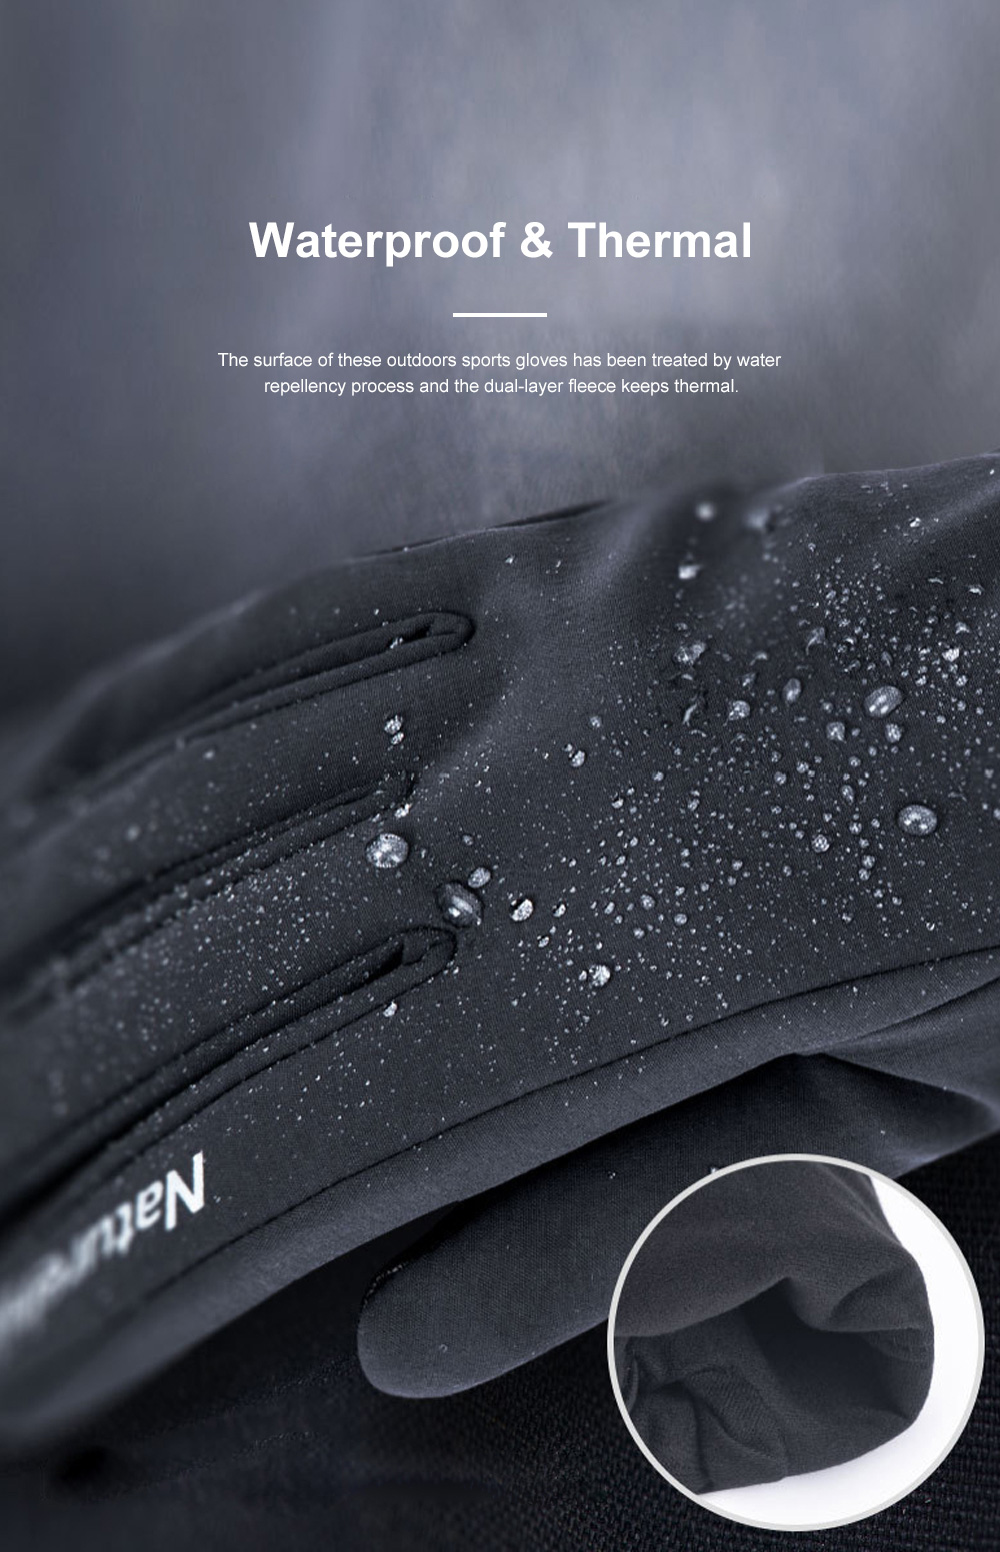 Naturehike Warm Gloves for Outdoors Running Hiking Waterproof Thermal Sports Gloves Touch Screen Designed Gloves 1